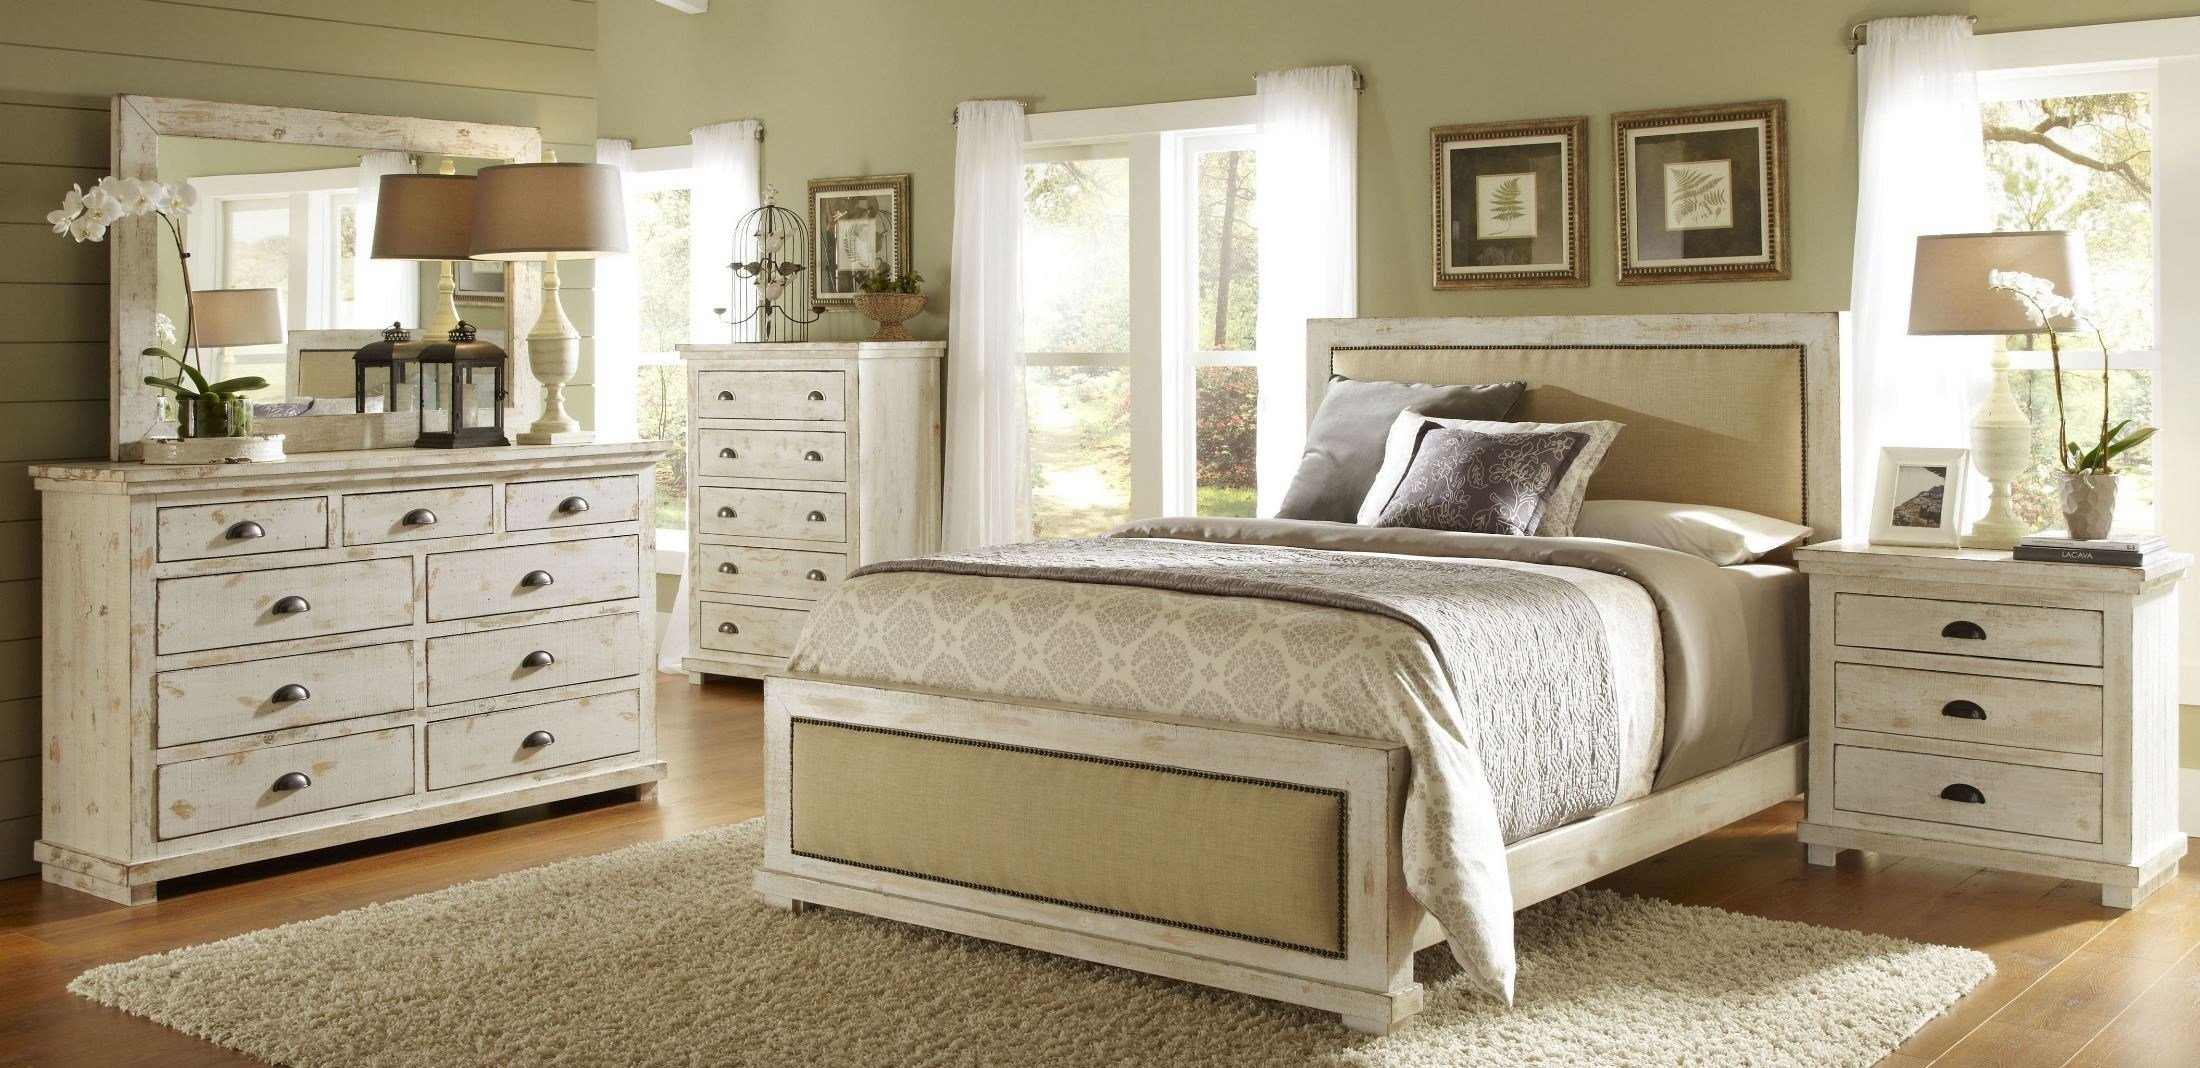 Best Willow Distressed White Upholstered Bedroom Set From With Pictures